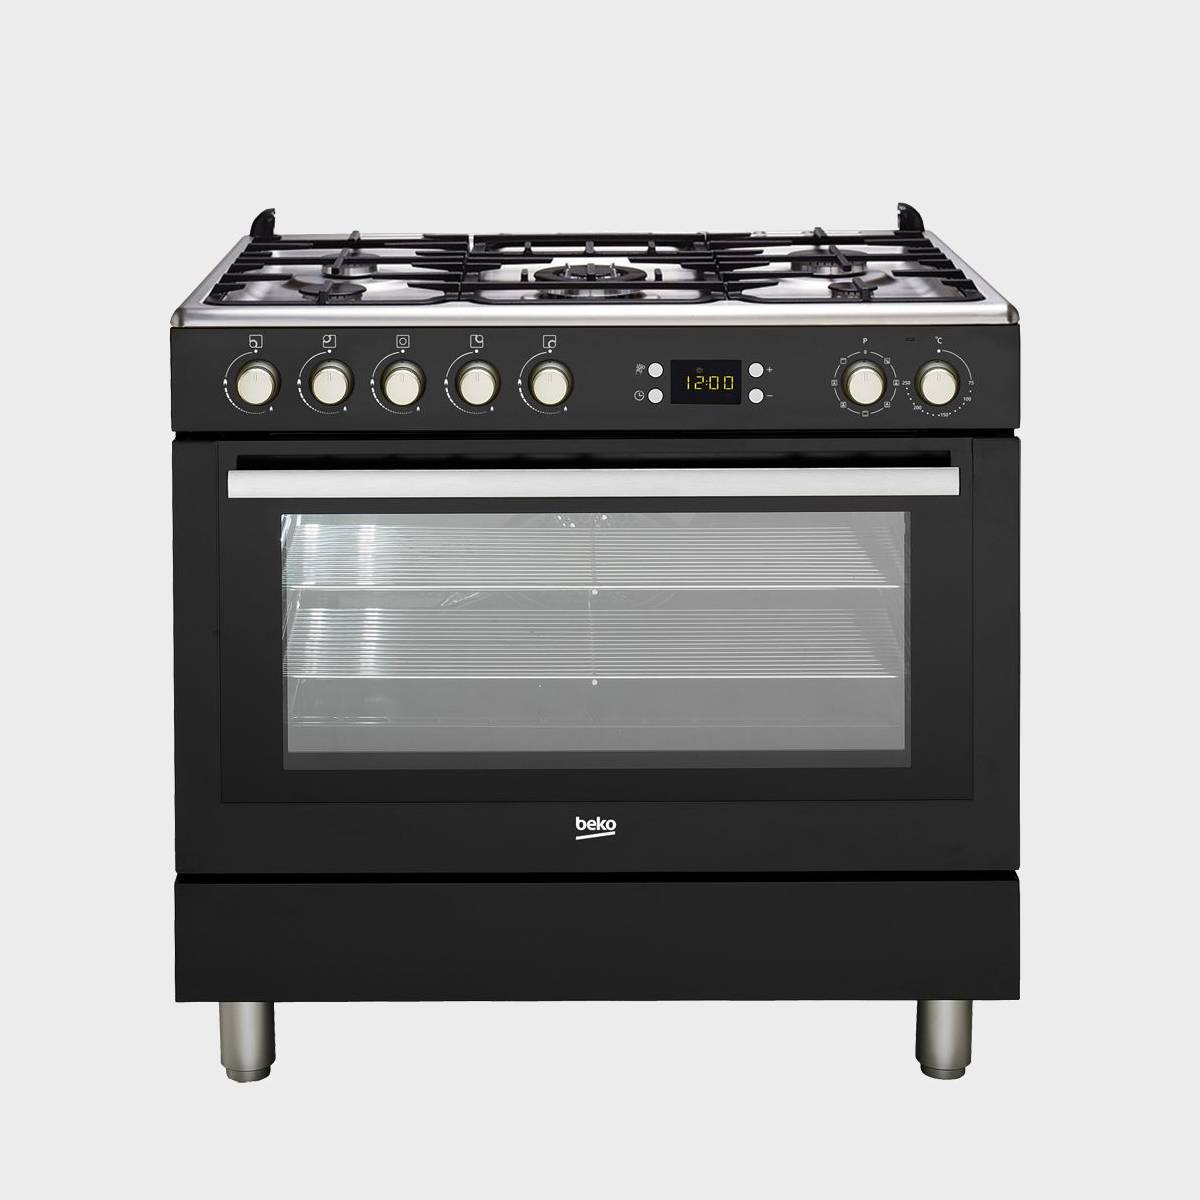 Beko gm15310db cocina de gas inox negro de 5 fuegos for Cocinas industriales de gas